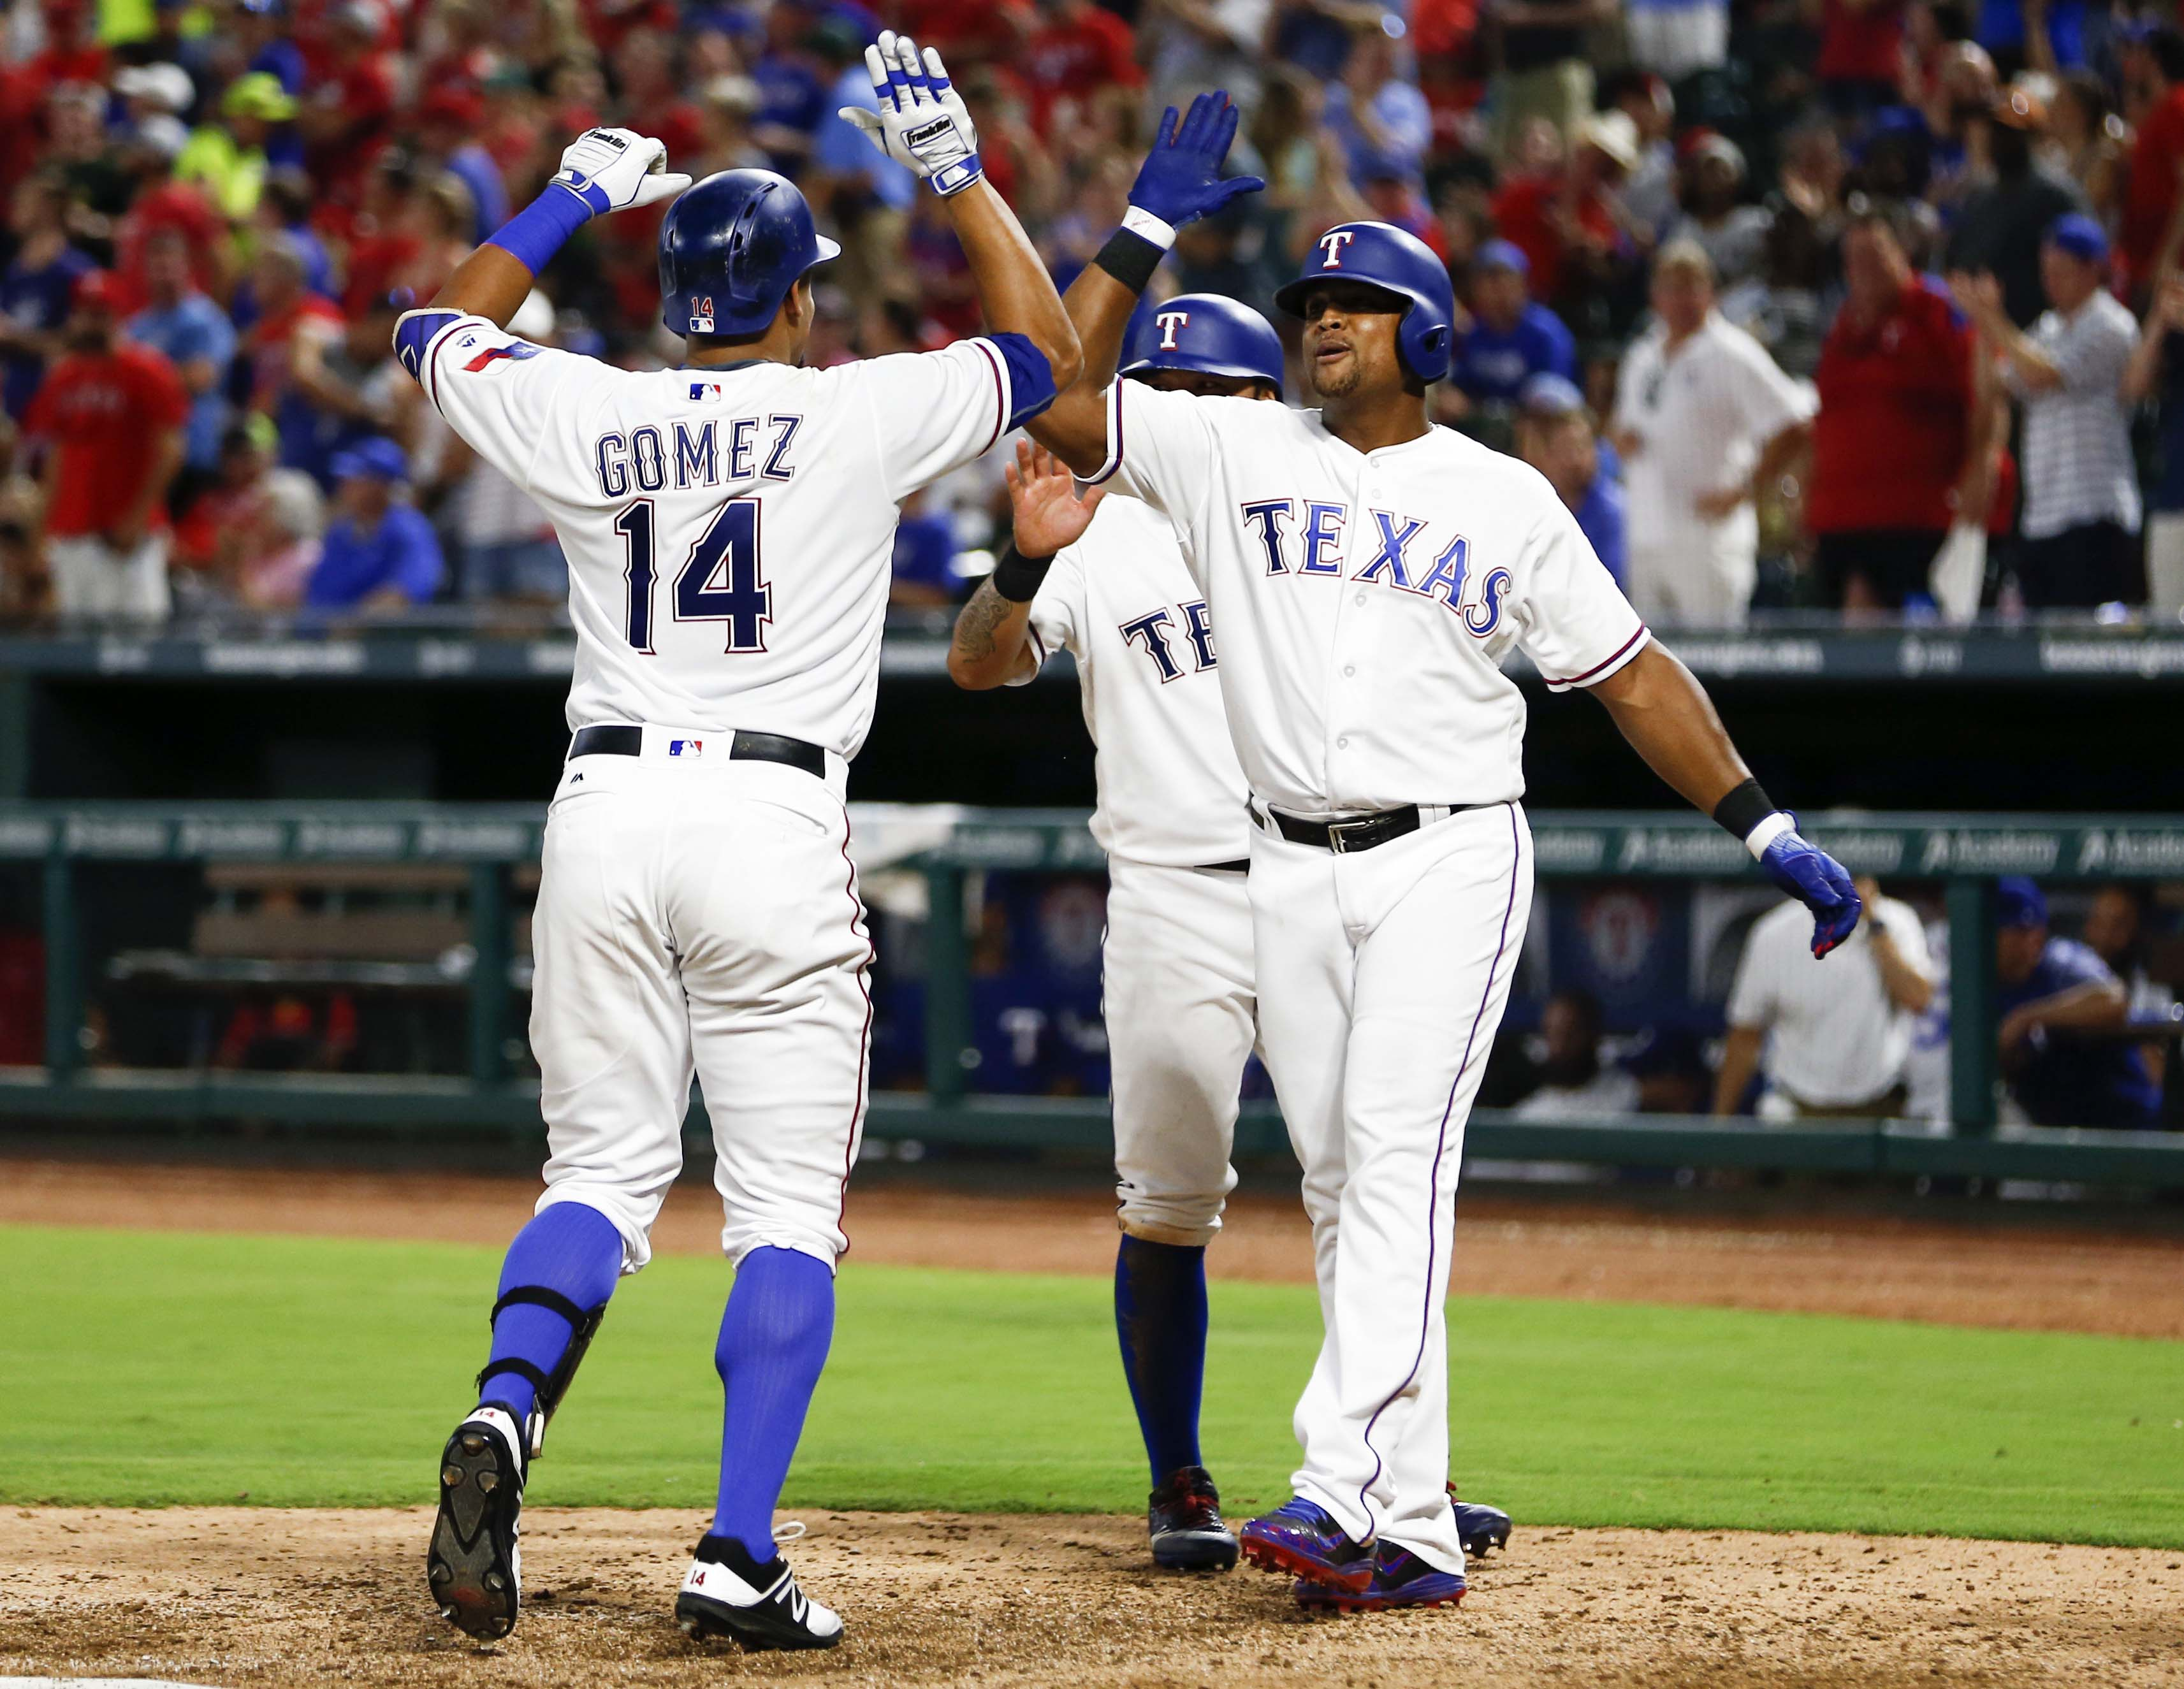 10115291-mlb-seattle-mariners-at-texas-rangers